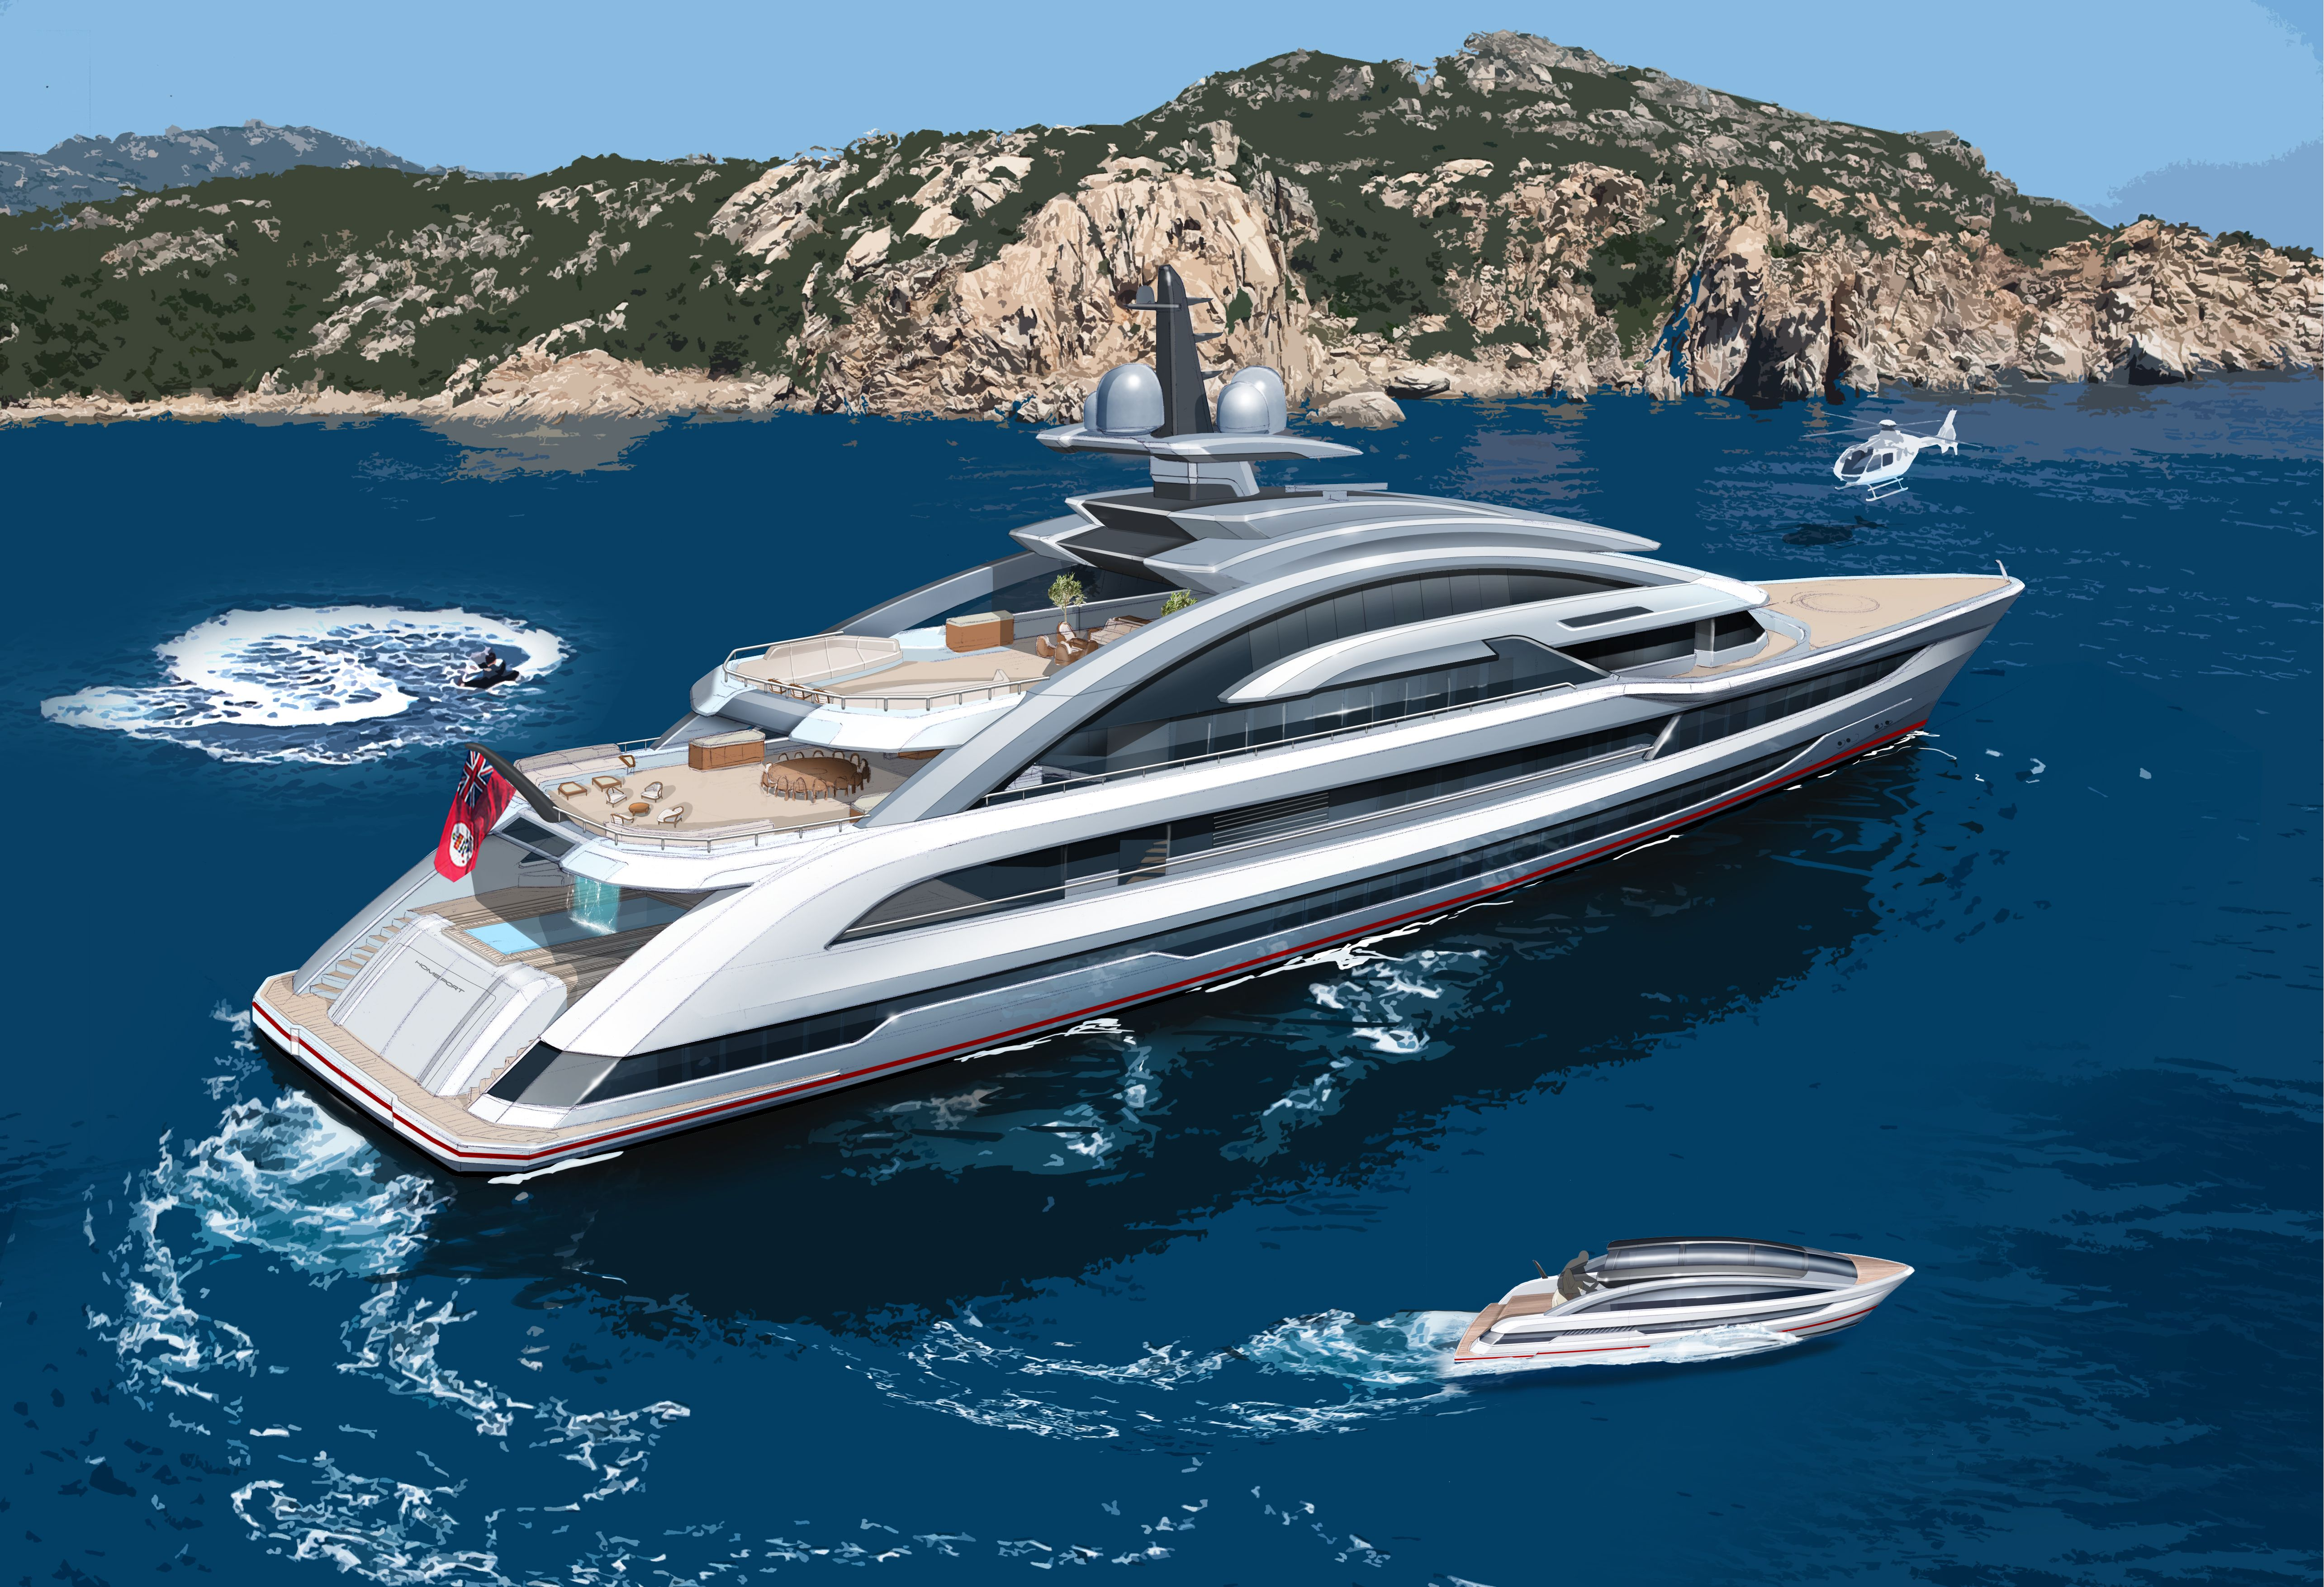 A PROJECT OF COSMIC PROPORTIONS HEESEN BUILDING LARGEST, FASTEST FULL-ALUMINIUM YACHT IN THE WORLD